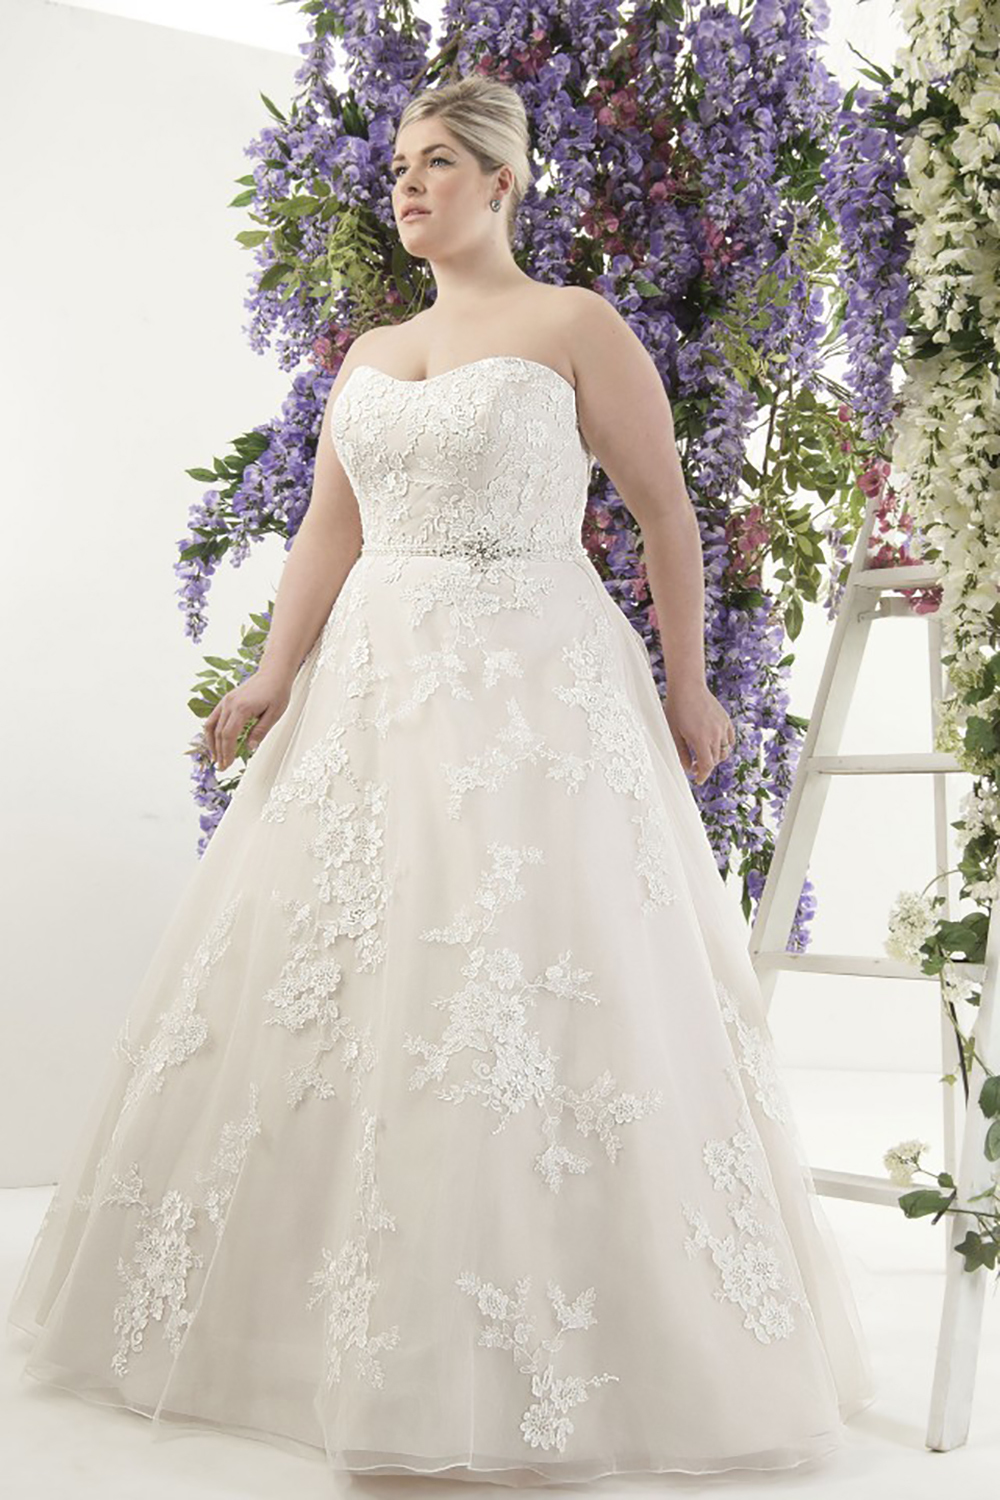 Wedding Dresses | Love Your Curves Bridal | Glasgow, Scotland